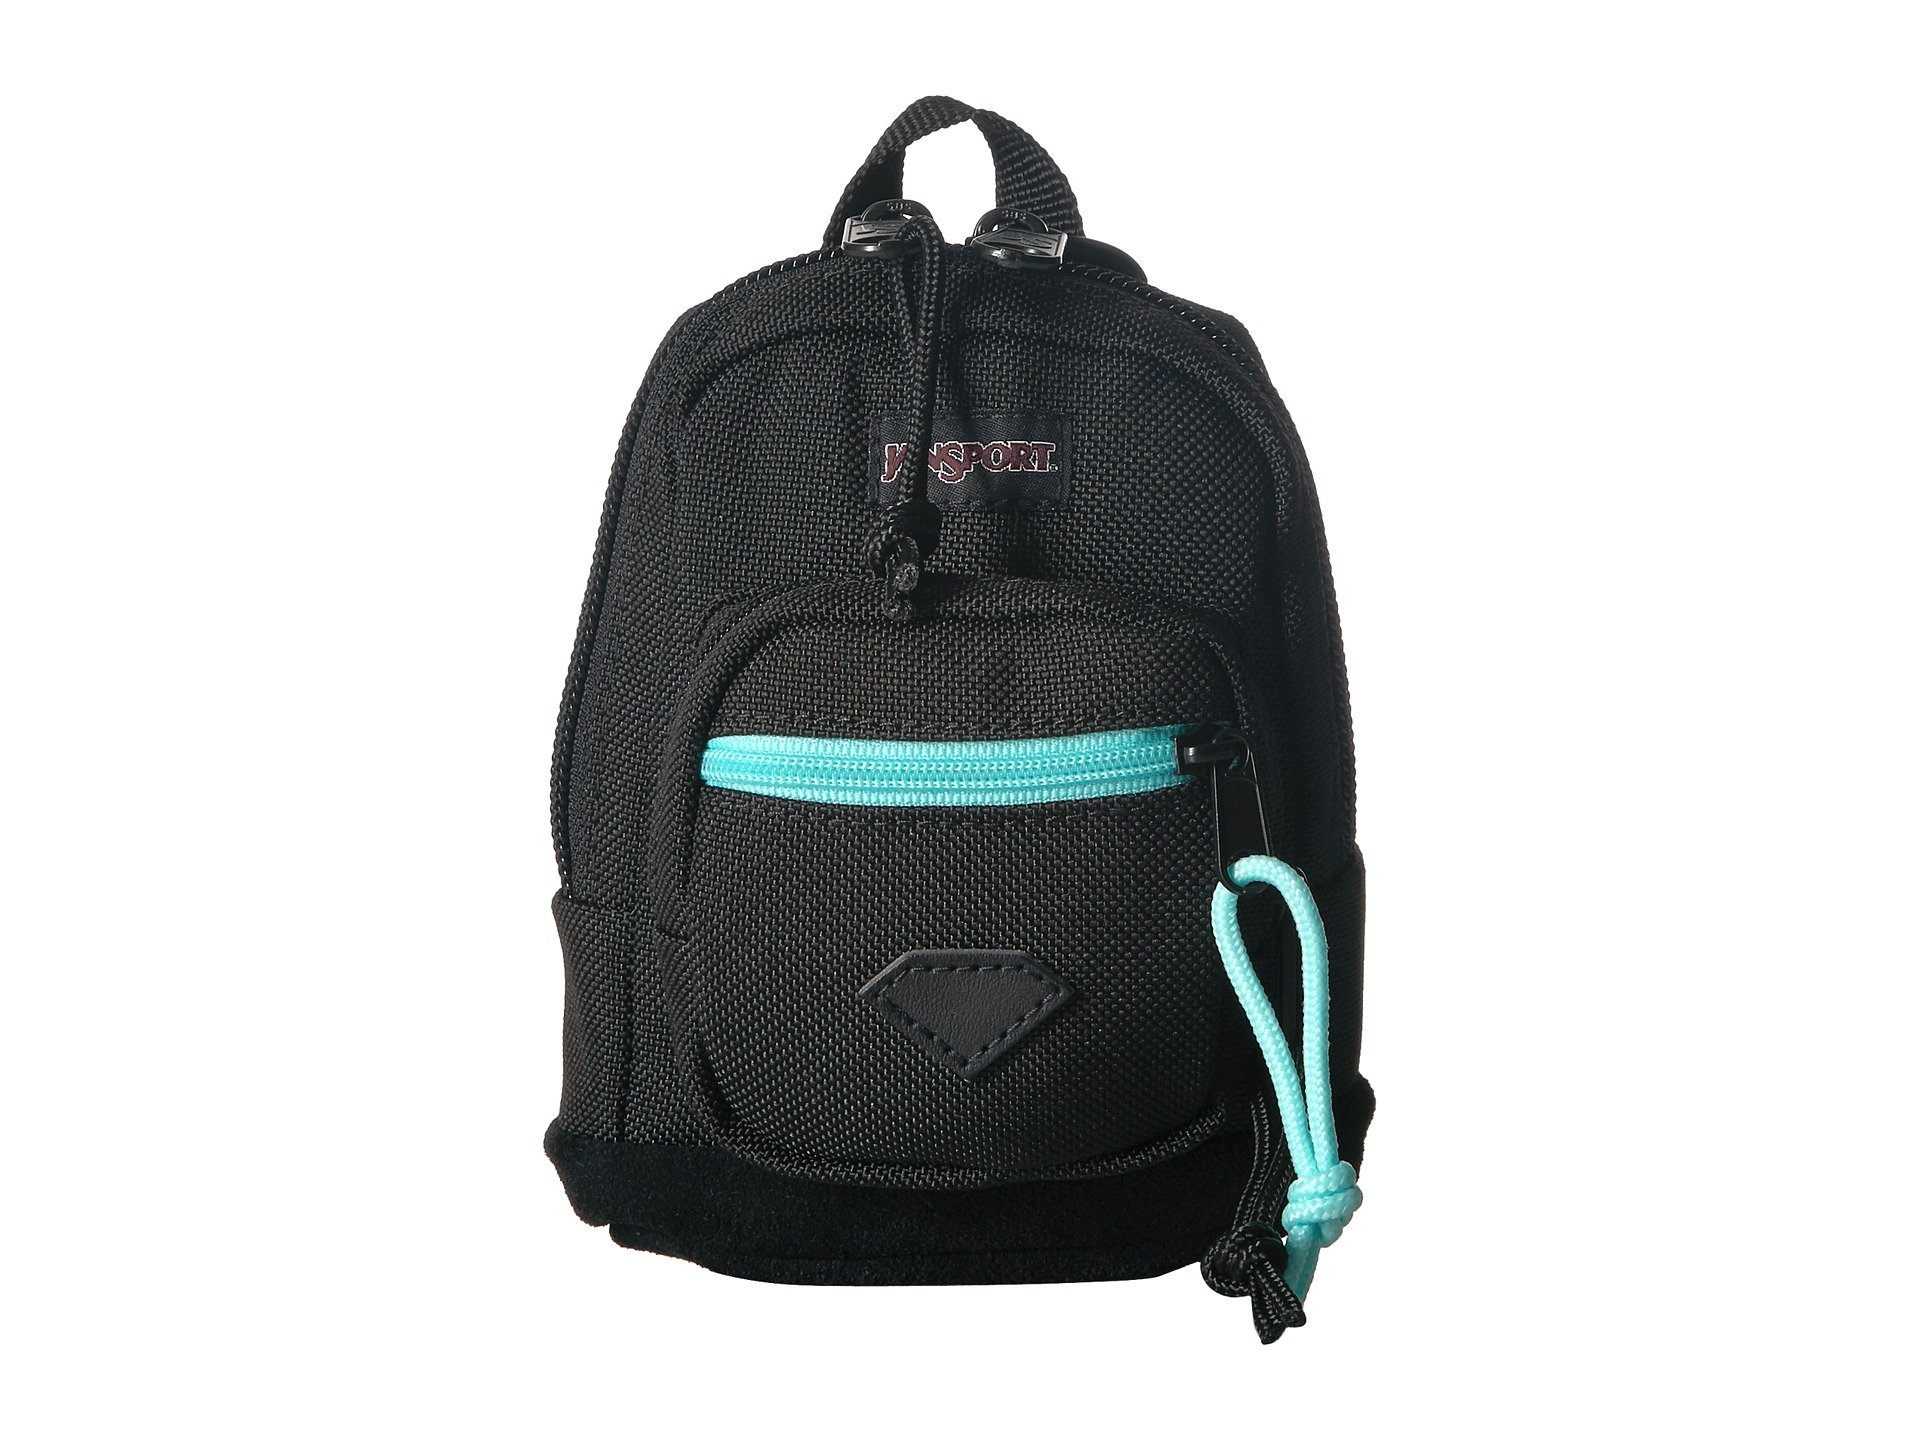 Cartuchera para Hombre JanSport JS X Dsc Right Pouch  + JanSport en VeoyCompro.net